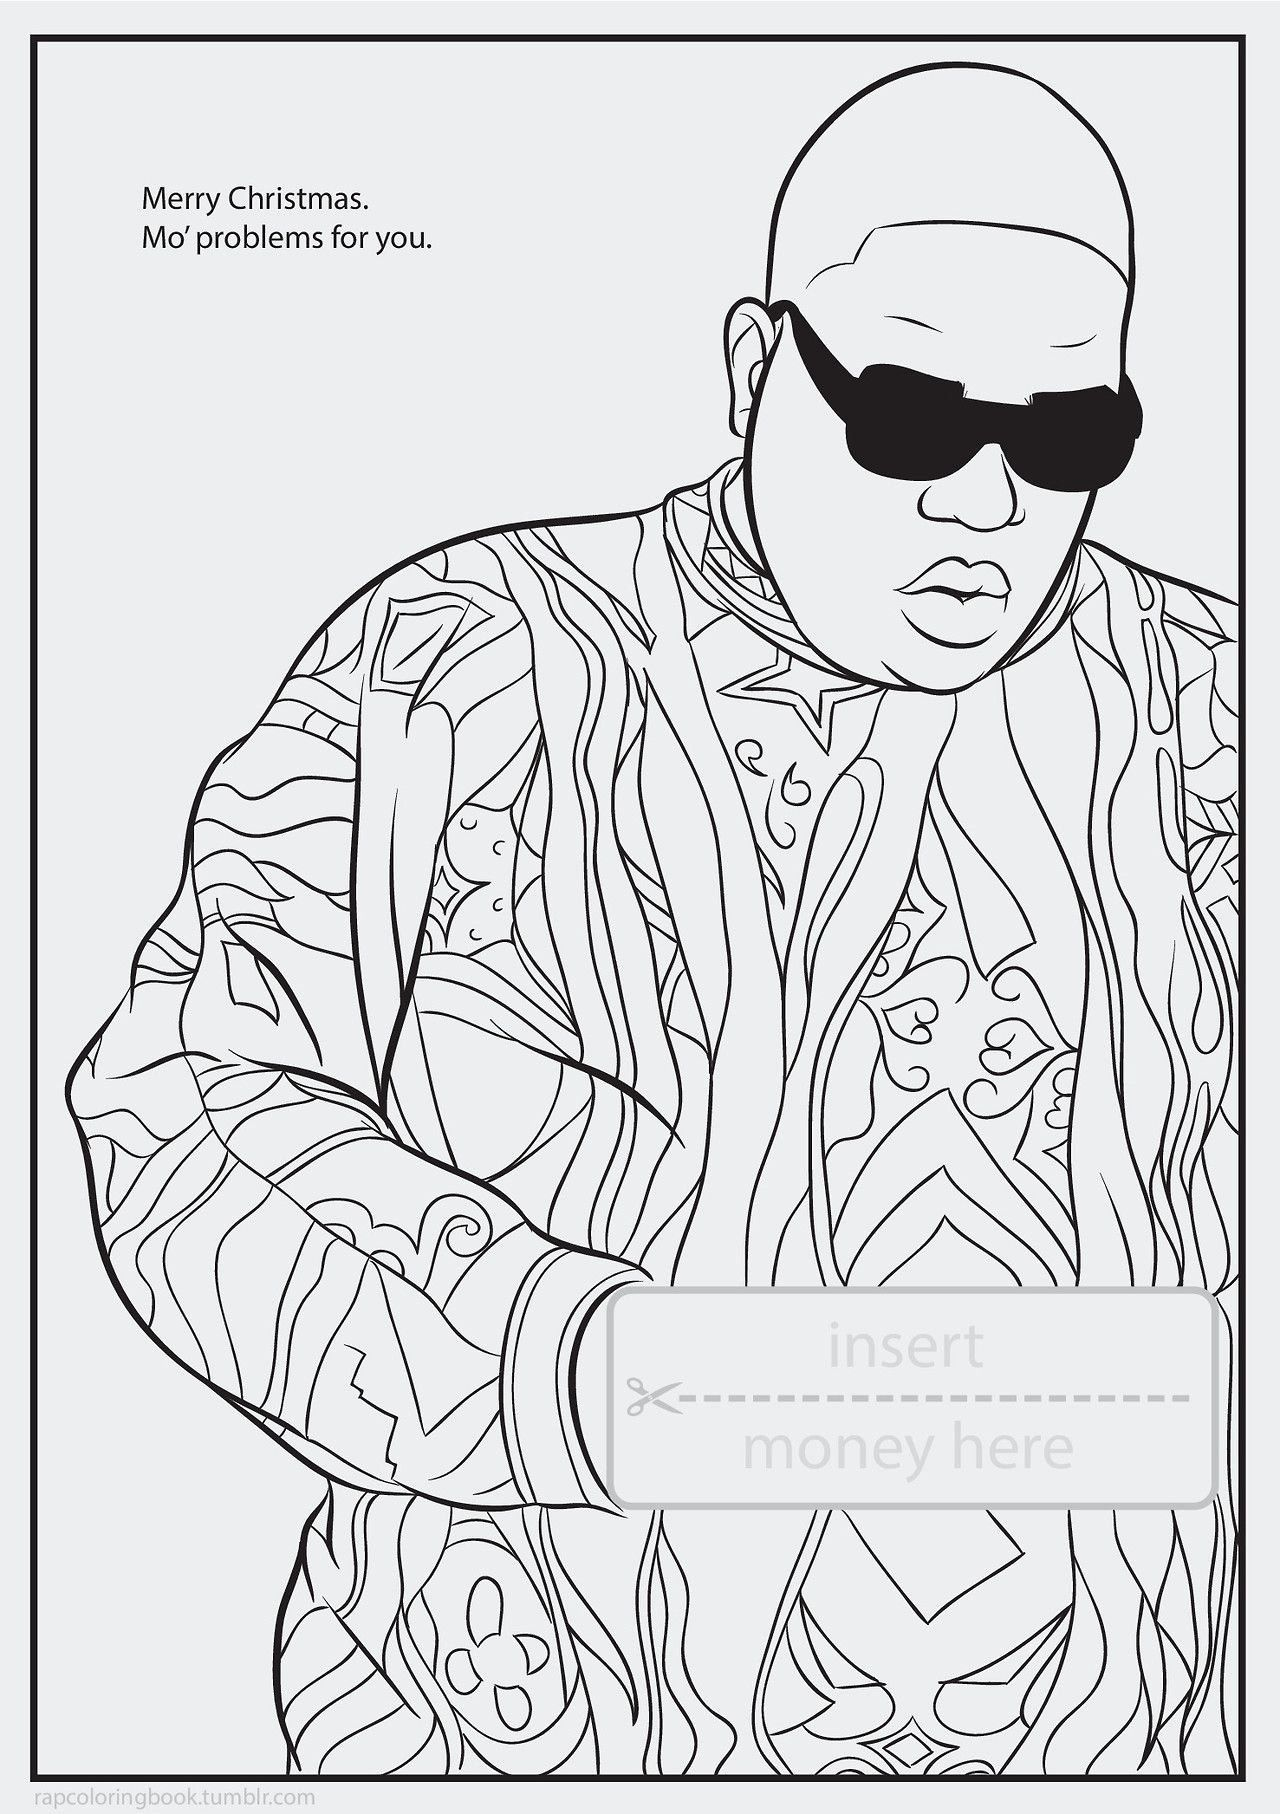 Gangsta Rap Coloring Book Beautiful Coloring Book Gangsta Rap Coloring Pages Free Book Pdf Coloring Books Coloring Pages Coloring Book Pages